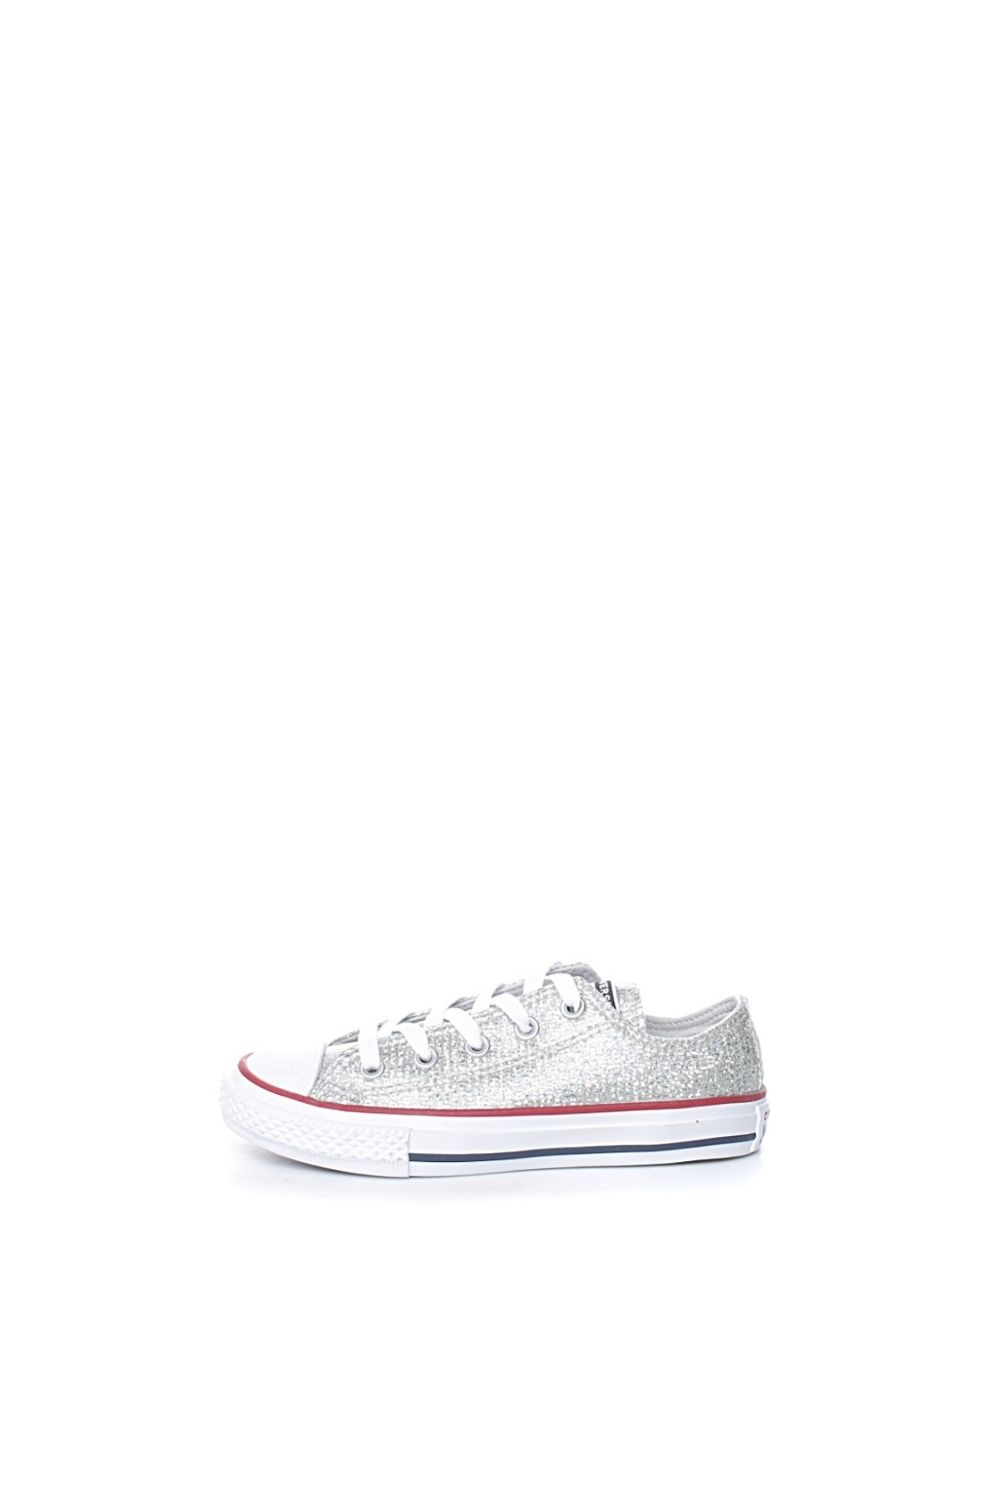 CONVERSE - Παιδικά Sneakers Με Glitter CONVERSE Chuck Taylor All Star Ασημί